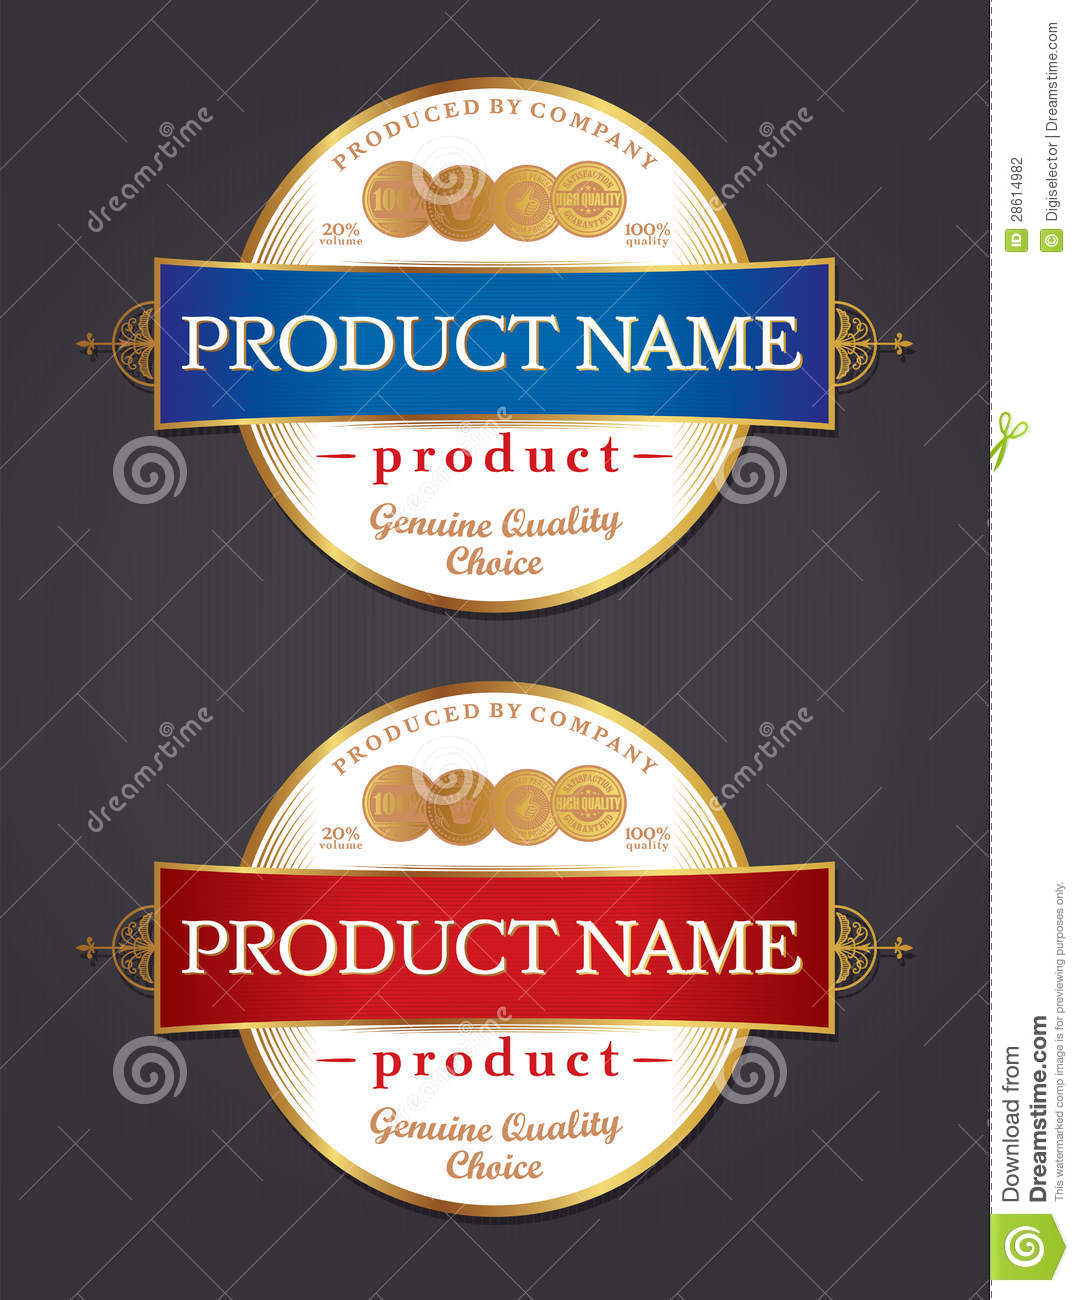 Captivating Label Design Template Vector  Label Design Templates